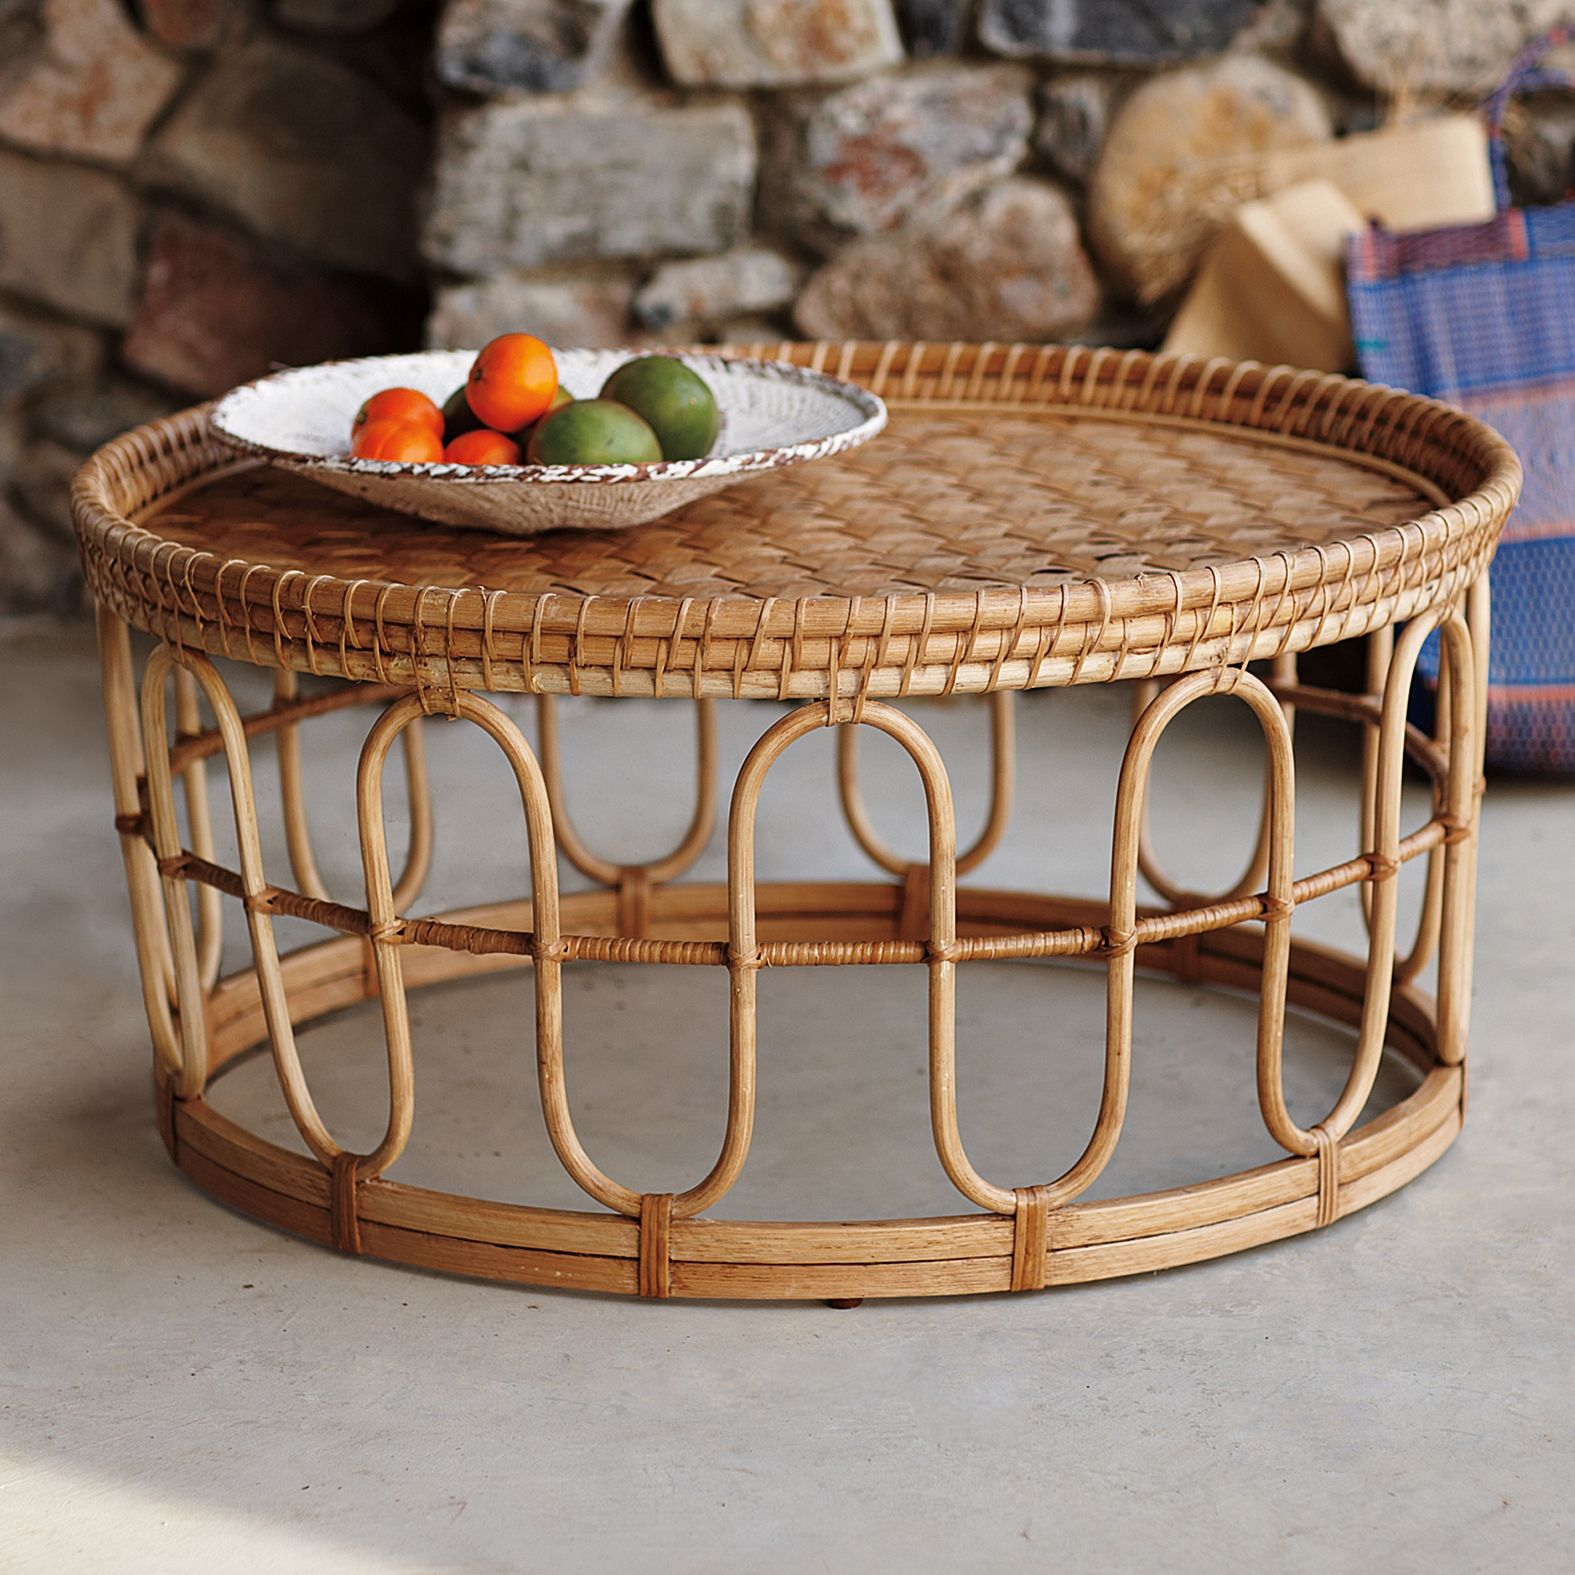 Rattan Table Banda Coffee Table Serena Lily Books Worth Reading